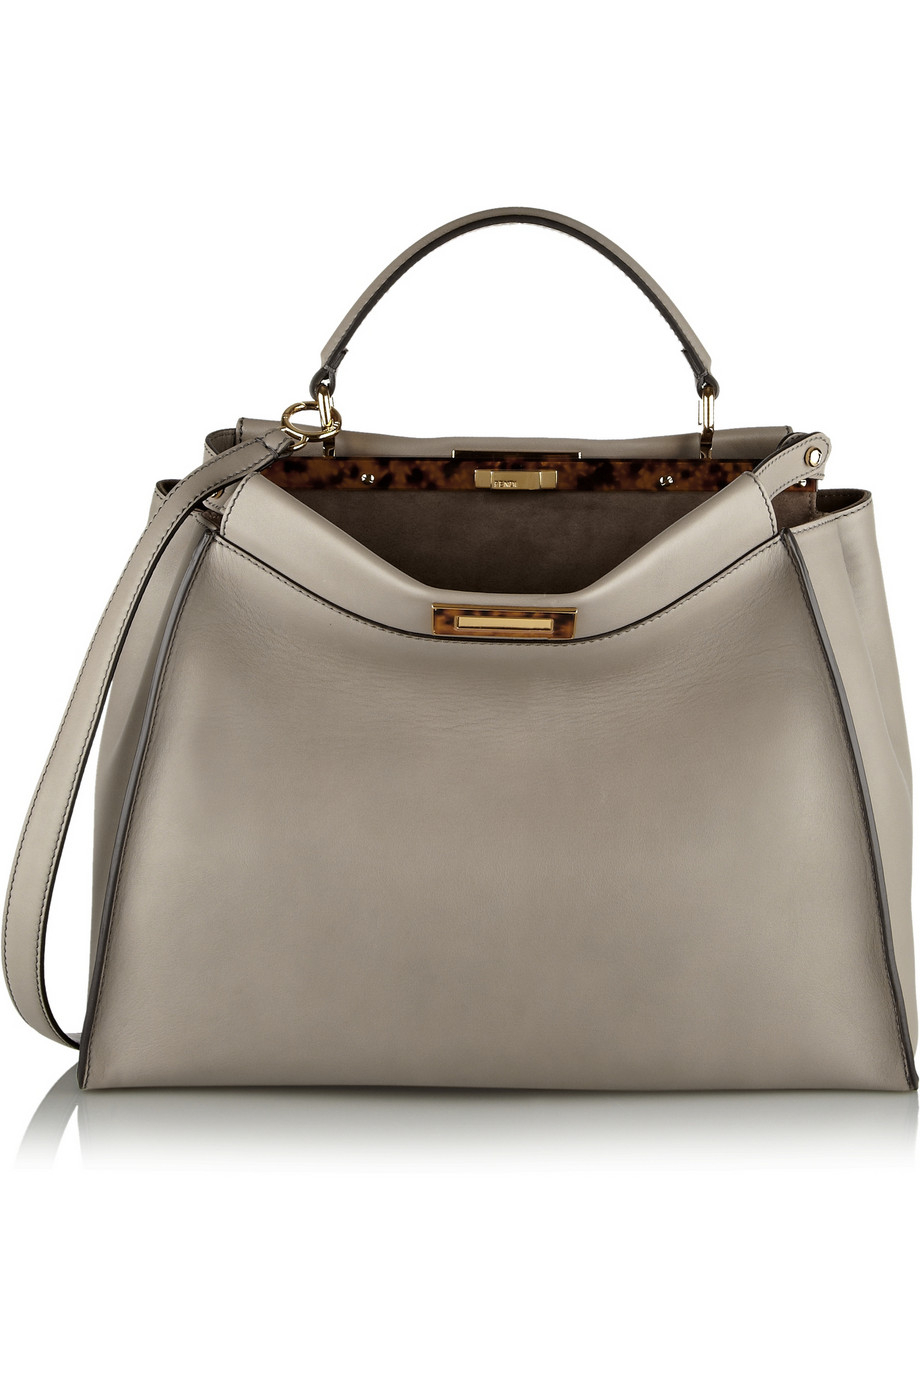 Fendi Peekaboo Medium Leather Tote In Gray Lyst